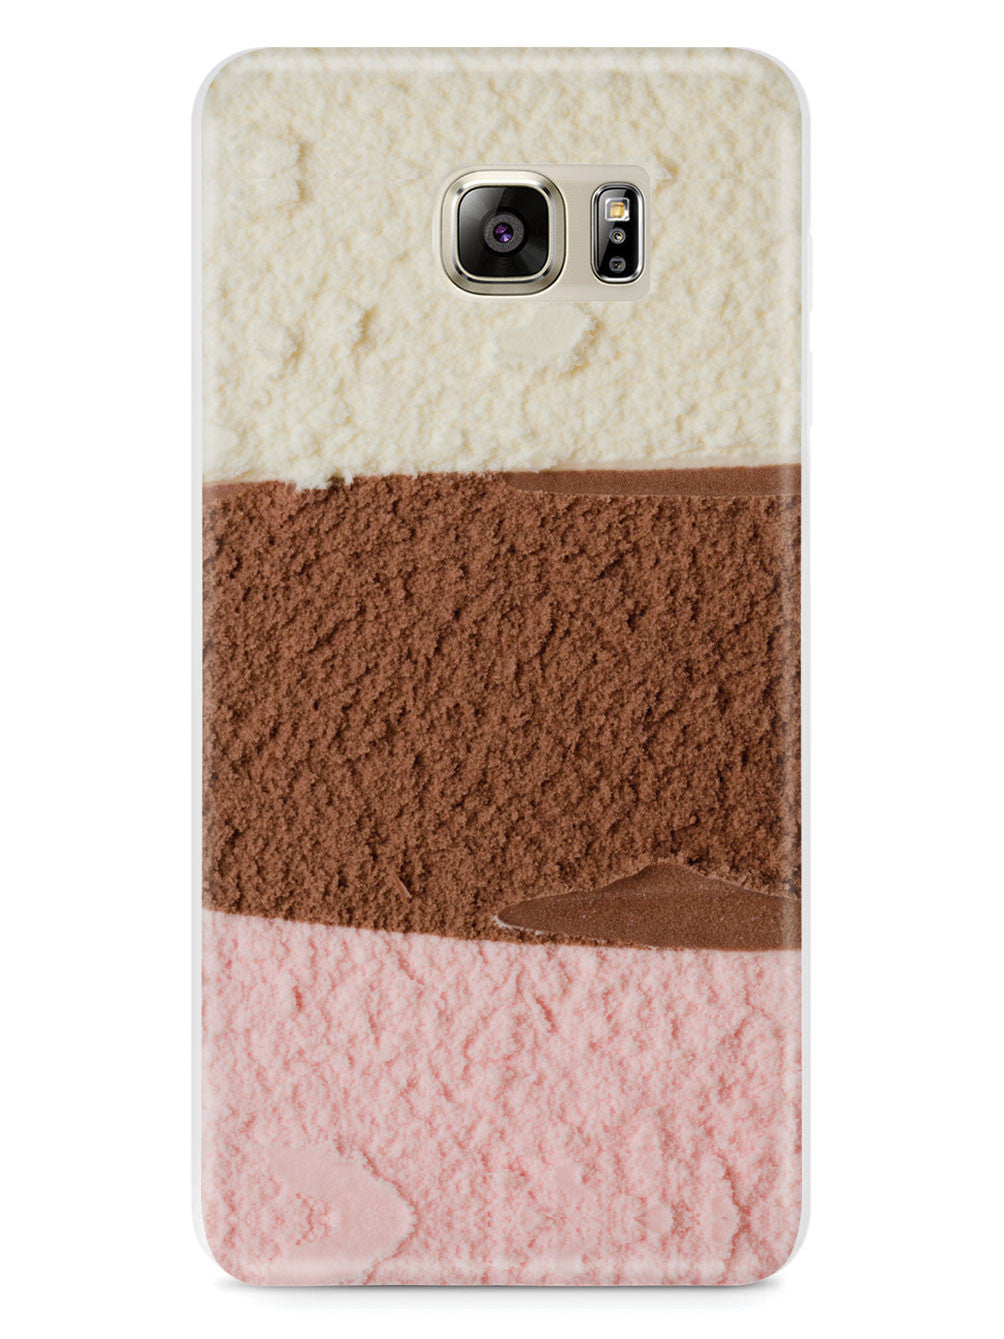 Neapolitan Ice Cream Case